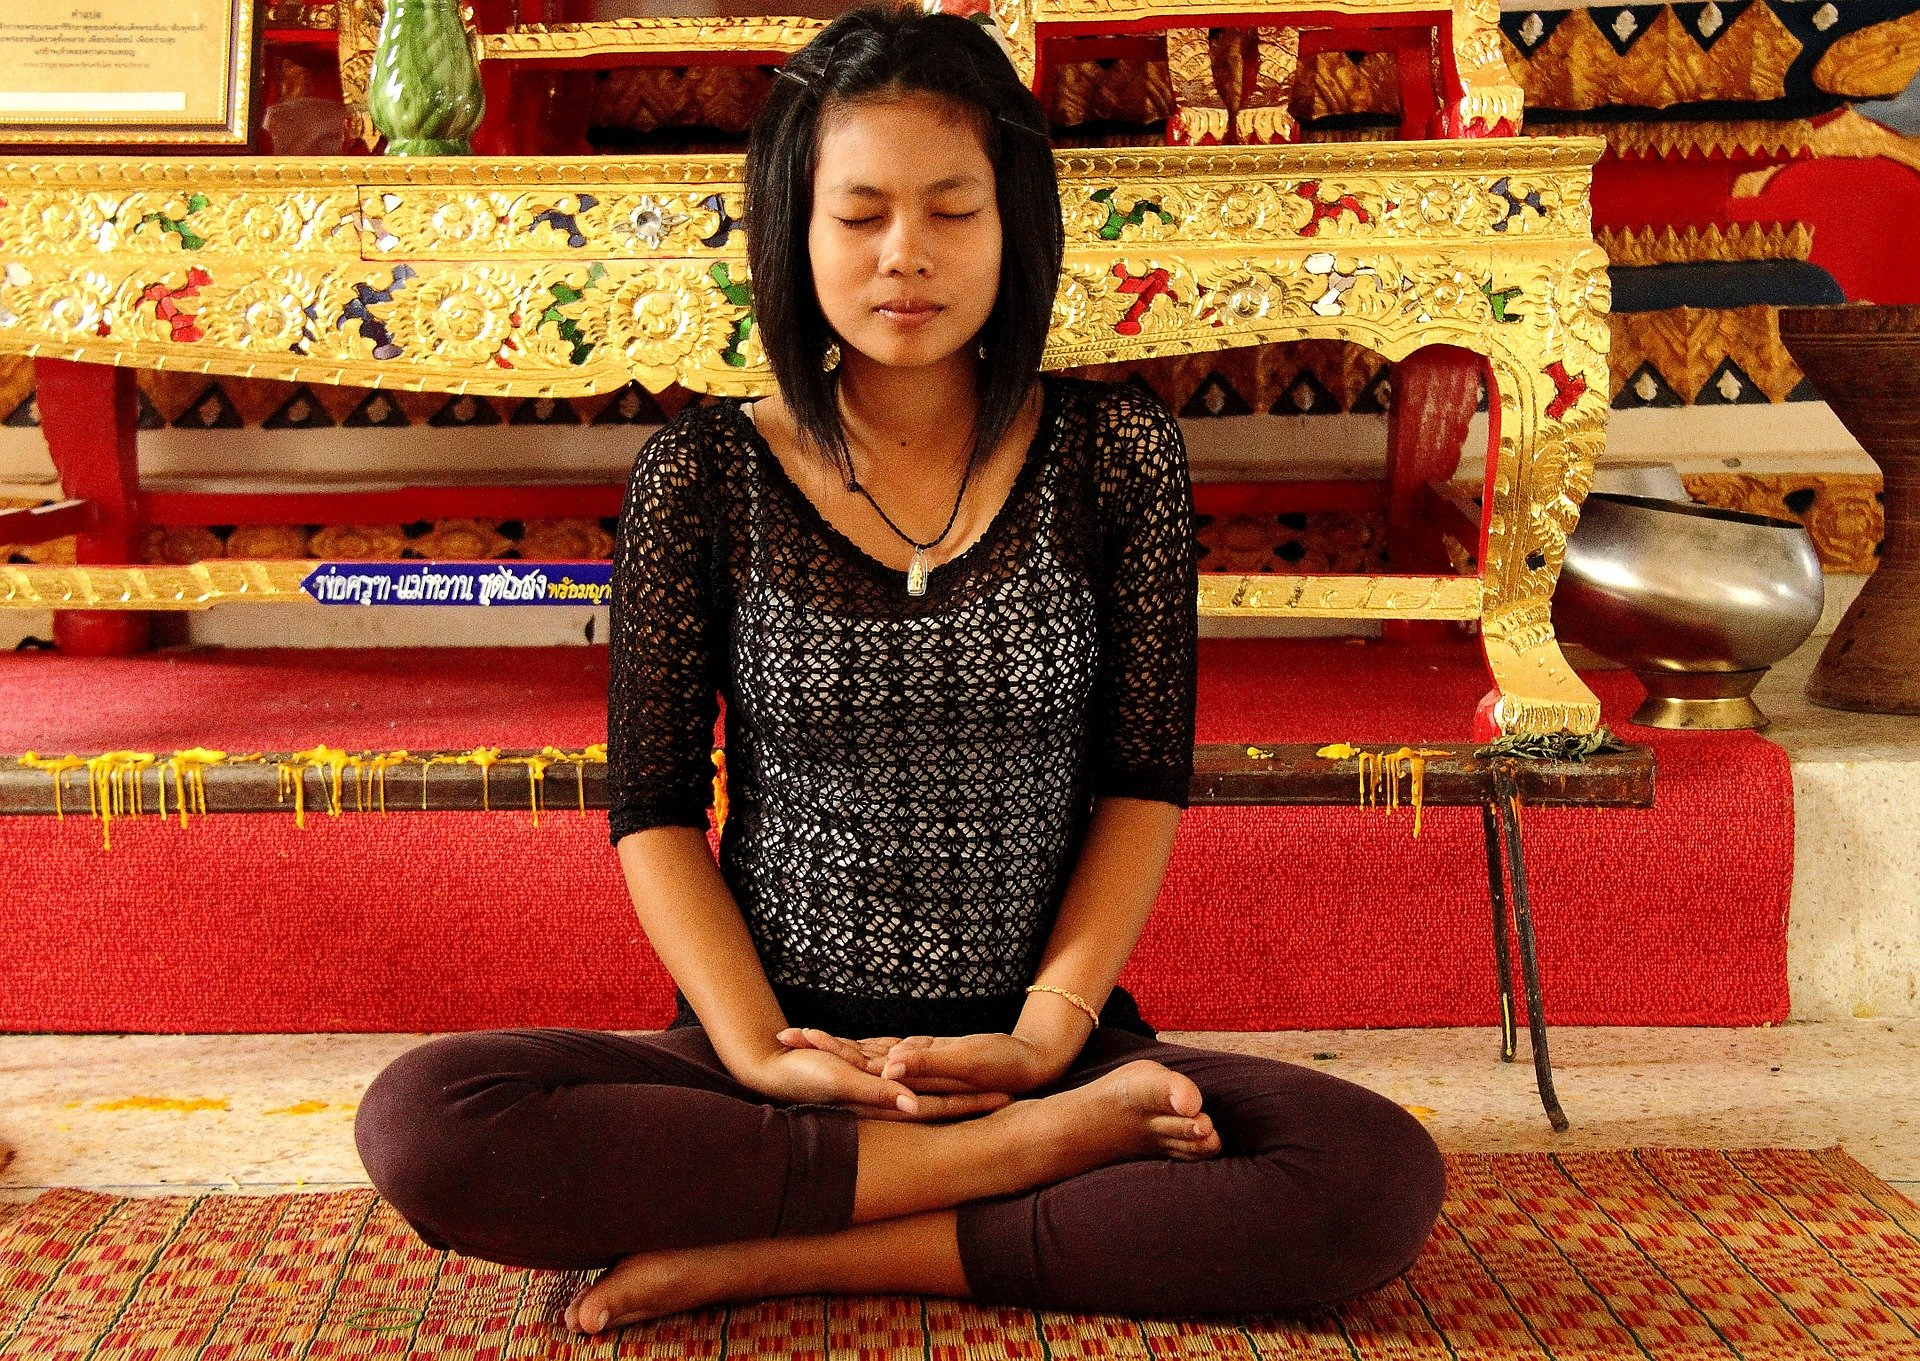 meditation 1 - Meditation and Breathing Techniques to Boost Health and Wellbeing